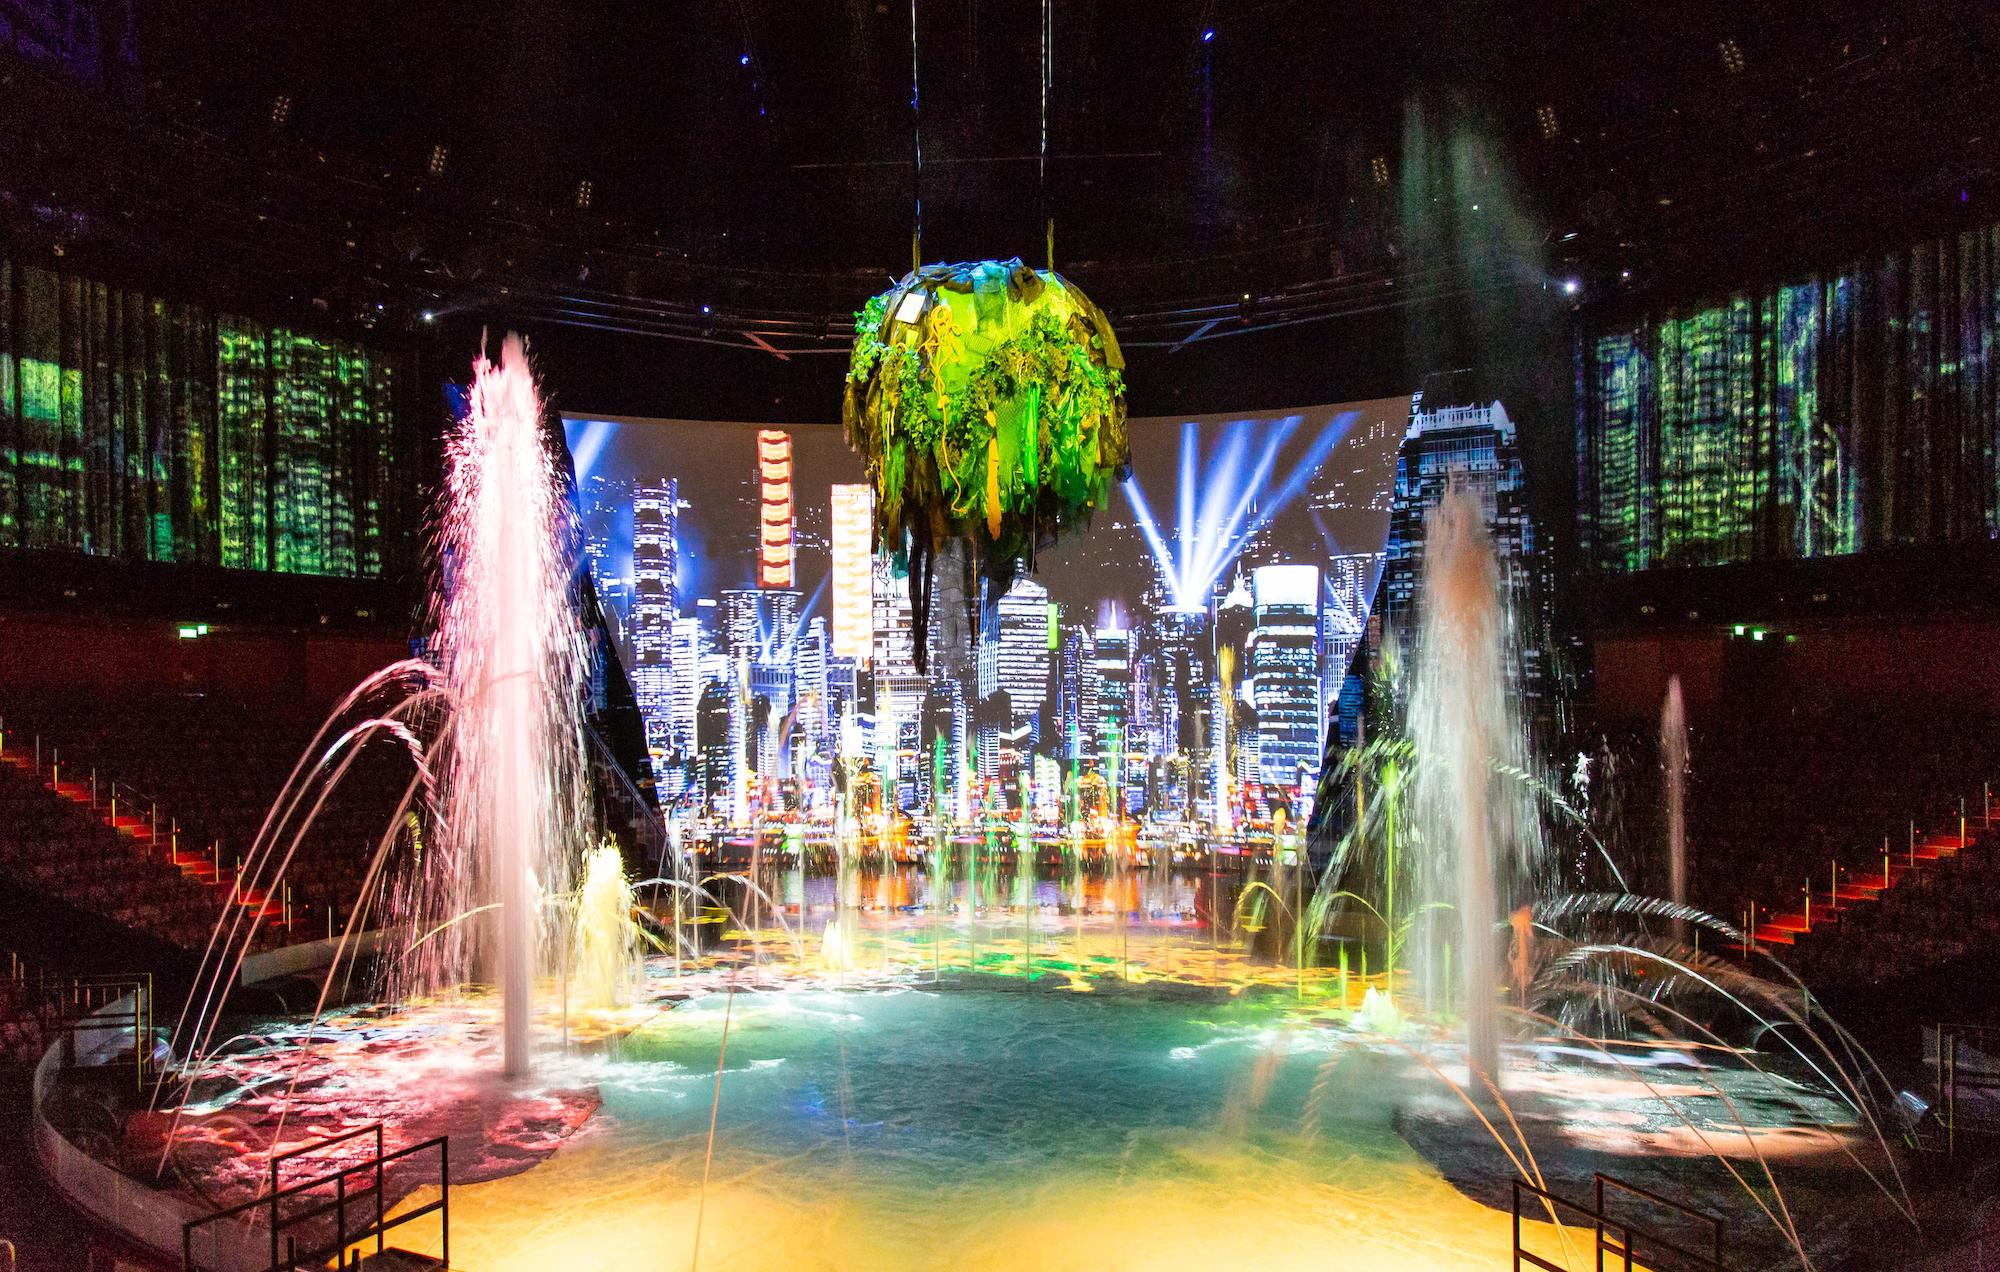 LA MER opening ceremony in House of Dancing Water Theater at City of Dreams